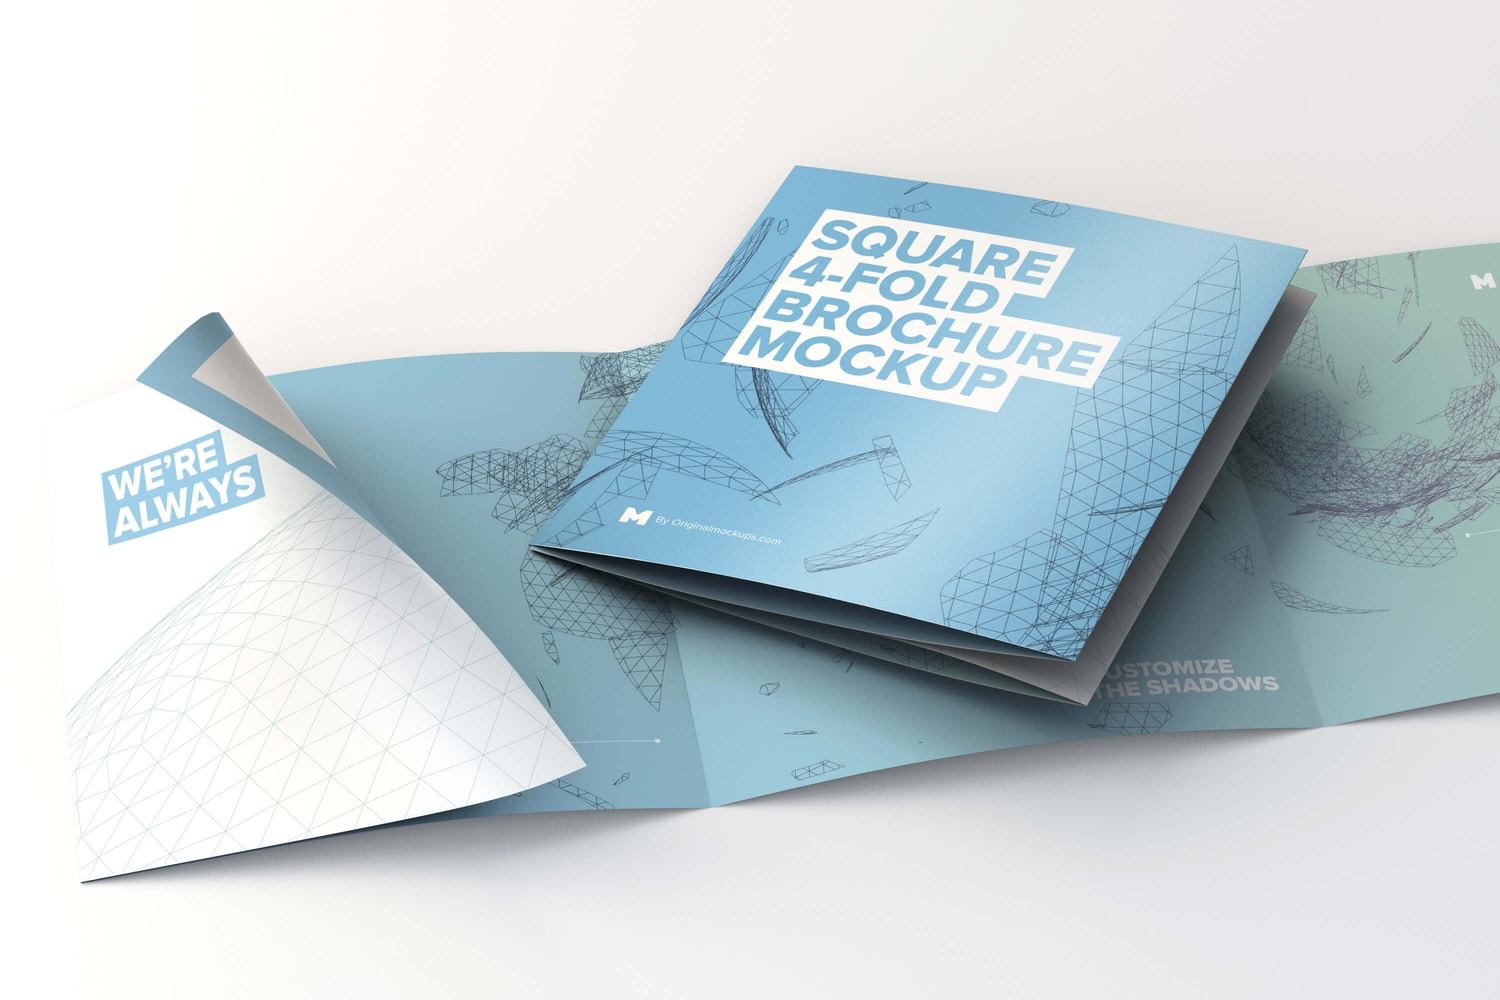 Folded and Unfolded Square 4-Fold-Brochure Mockup